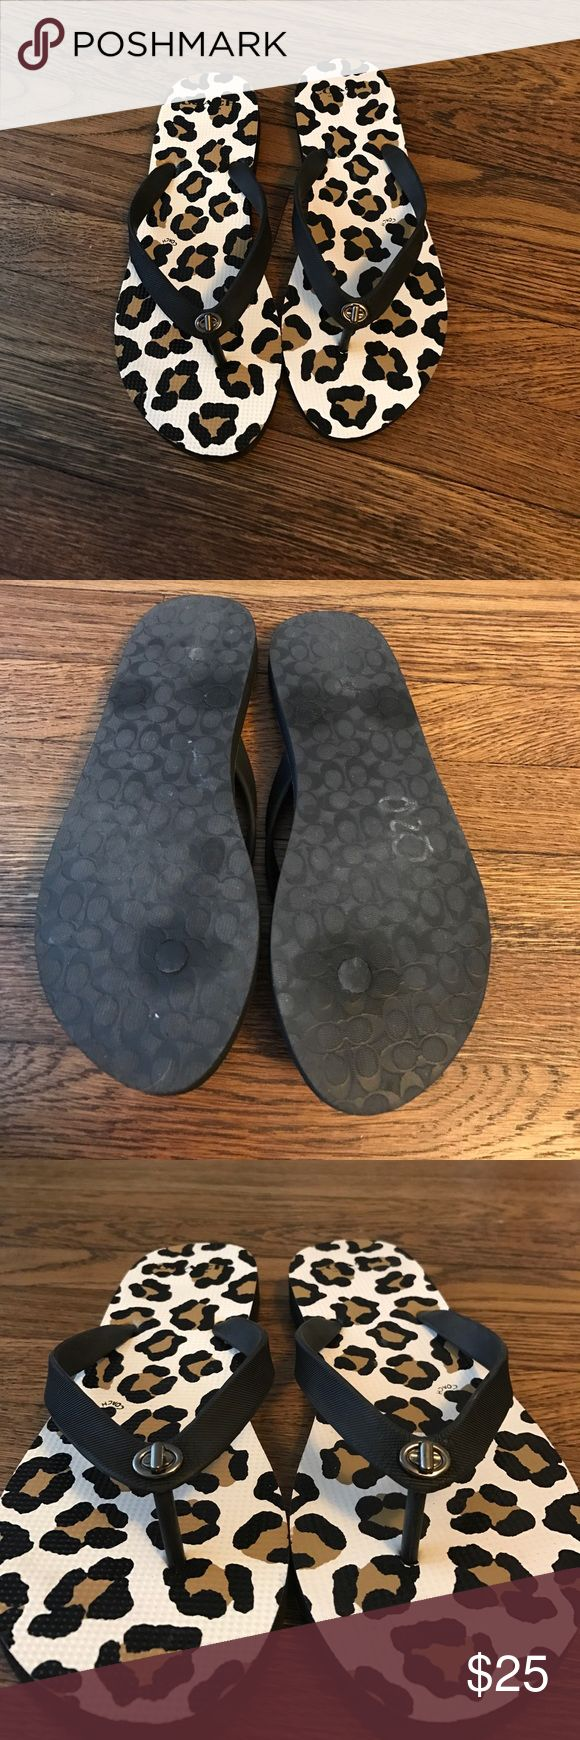 Coach animal print flip flops Coach animal print flip flops. NEW only wore once! Coach Shoes Sandals